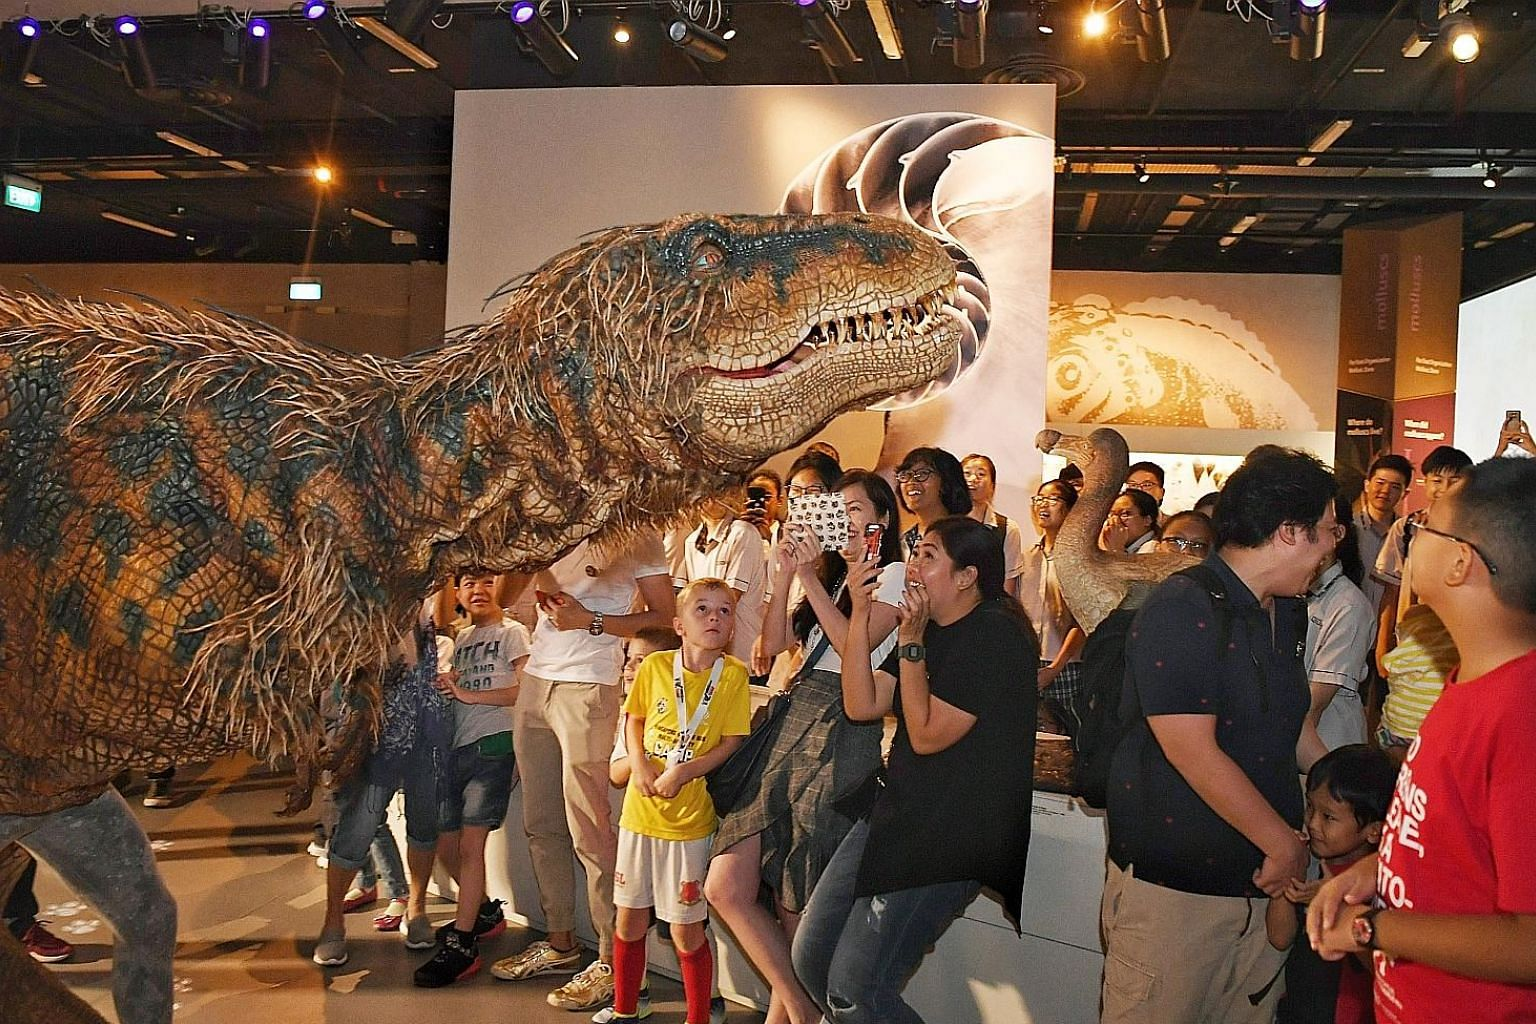 The baby Tyrannosaurus Rex, controlled by British performer Neal Holmes, at the Lee Kong Chian Natural History Museum on Tuesday.